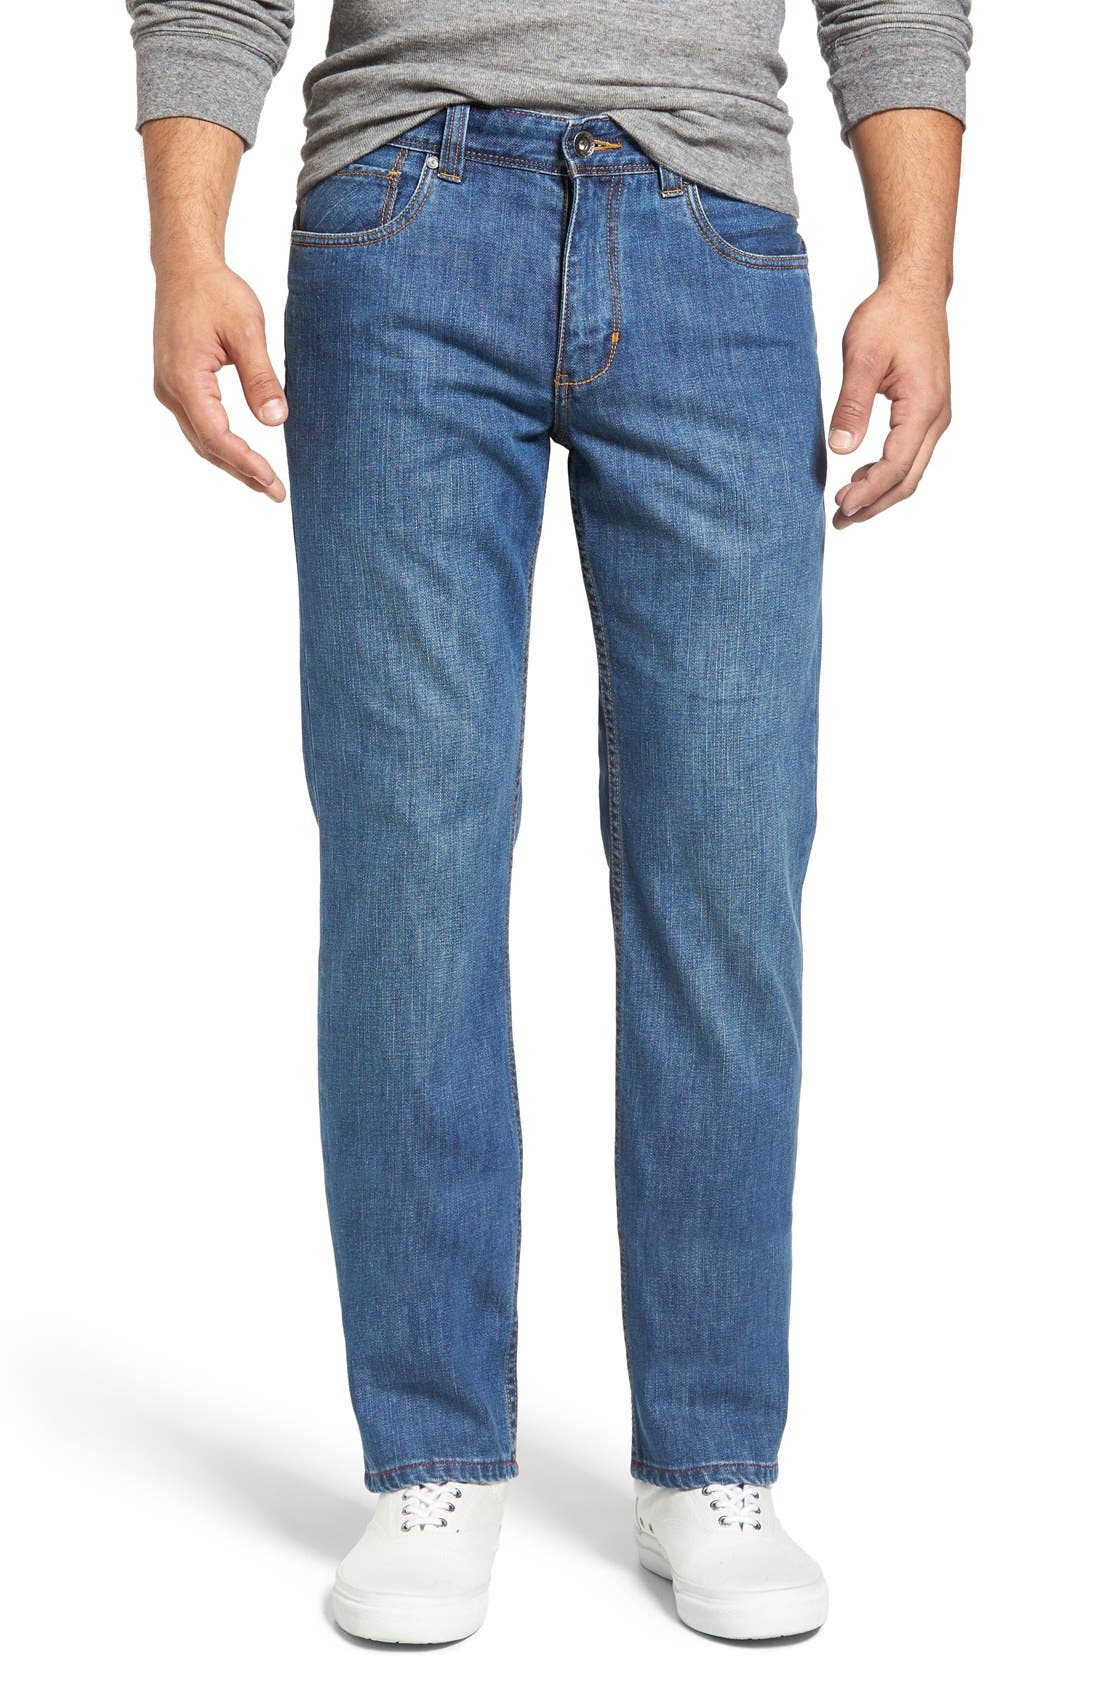 Santorini Straight Leg Jeans,                             Main thumbnail 1, color,                             401